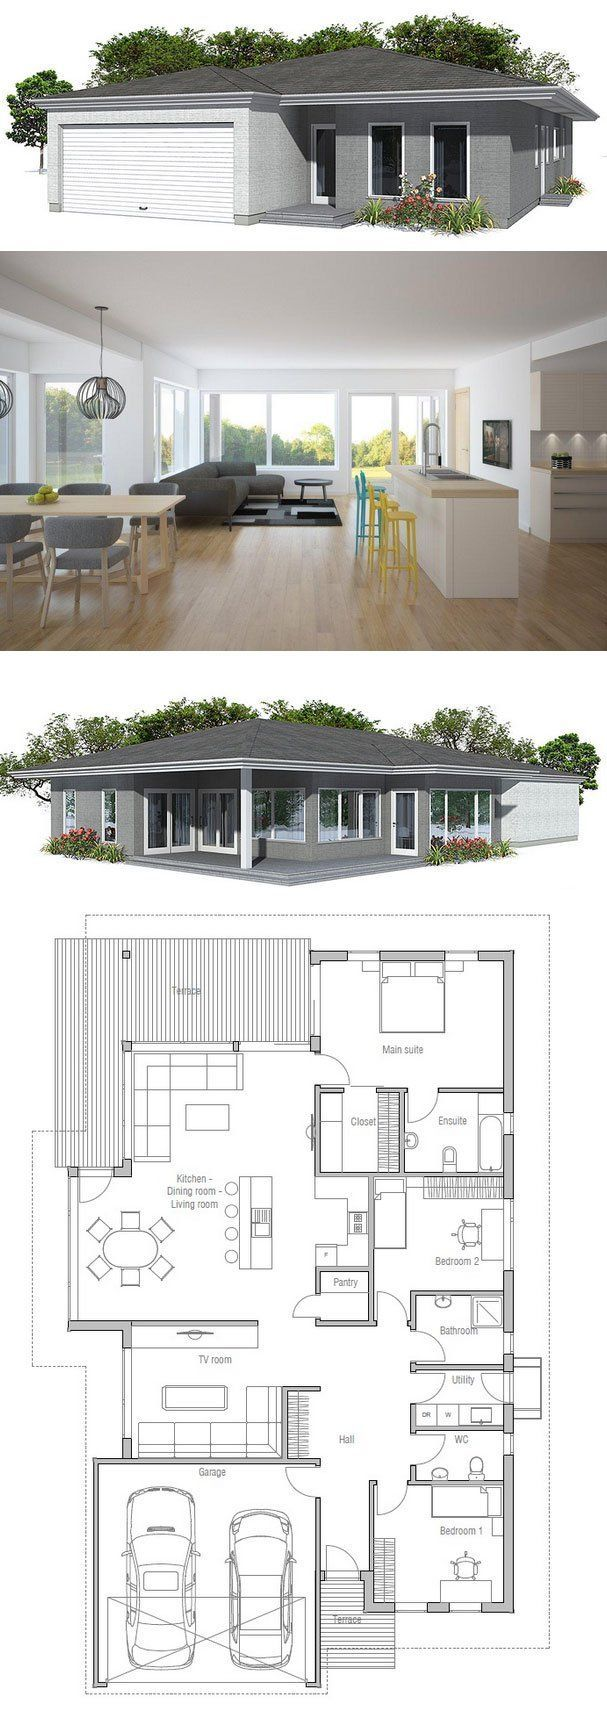 ^ 1000+ images about rchitecture on Pinterest Modern farmhouse ...